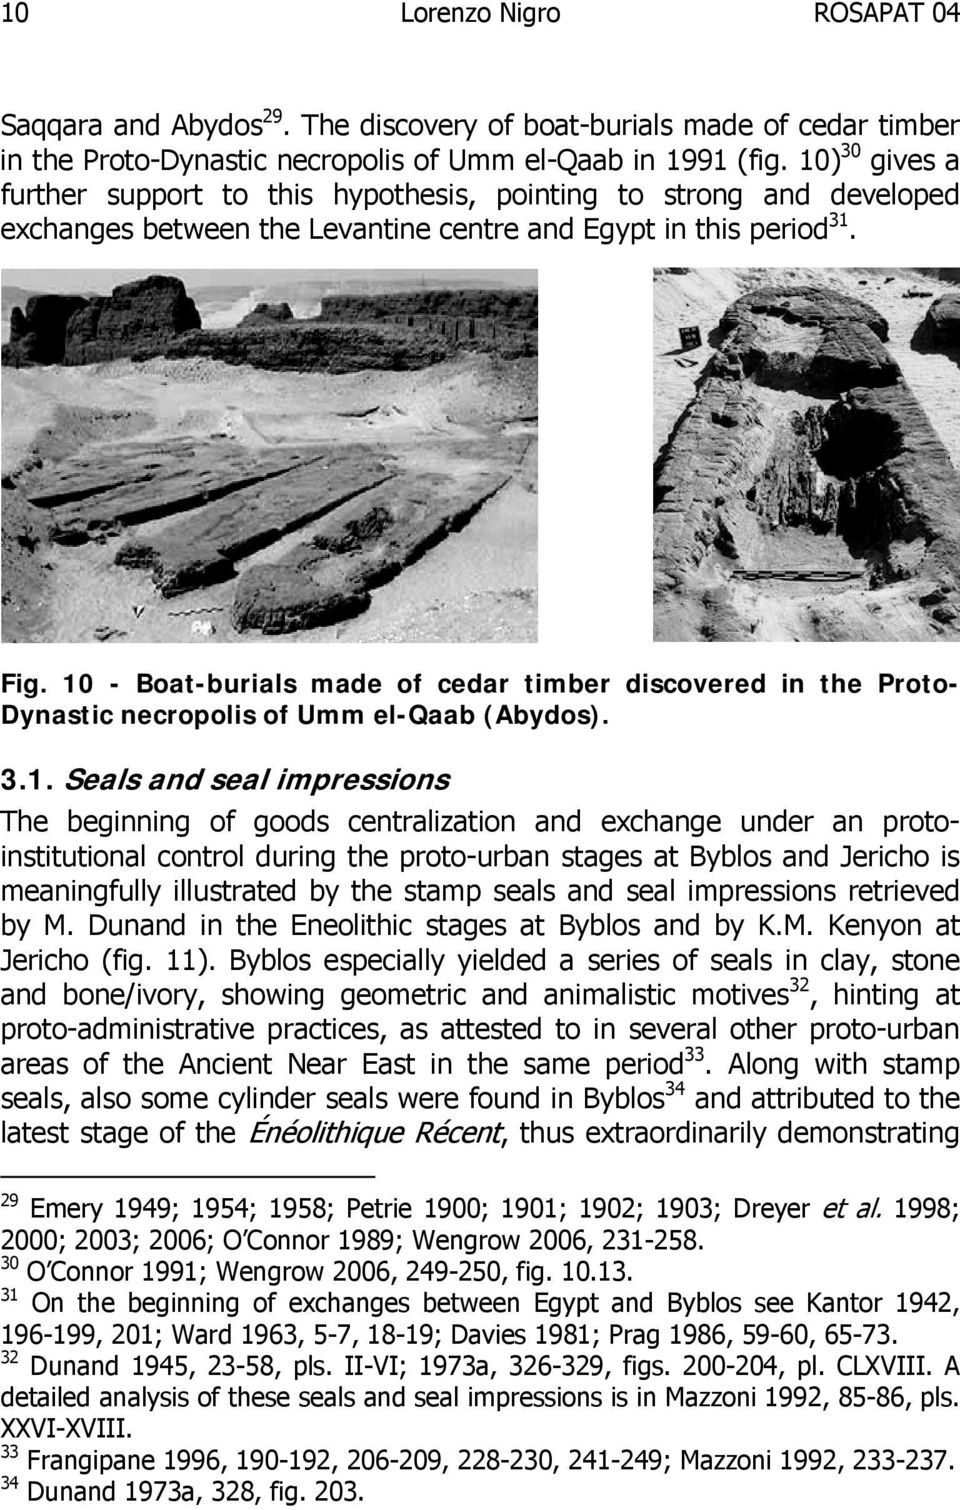 10 - Boat-burials made of cedar timber discovered in the Proto- Dynastic necropolis of Umm el-qaab (Abydos). 3.1. Seals and seal impressions The beginning of goods centralization and exchange under